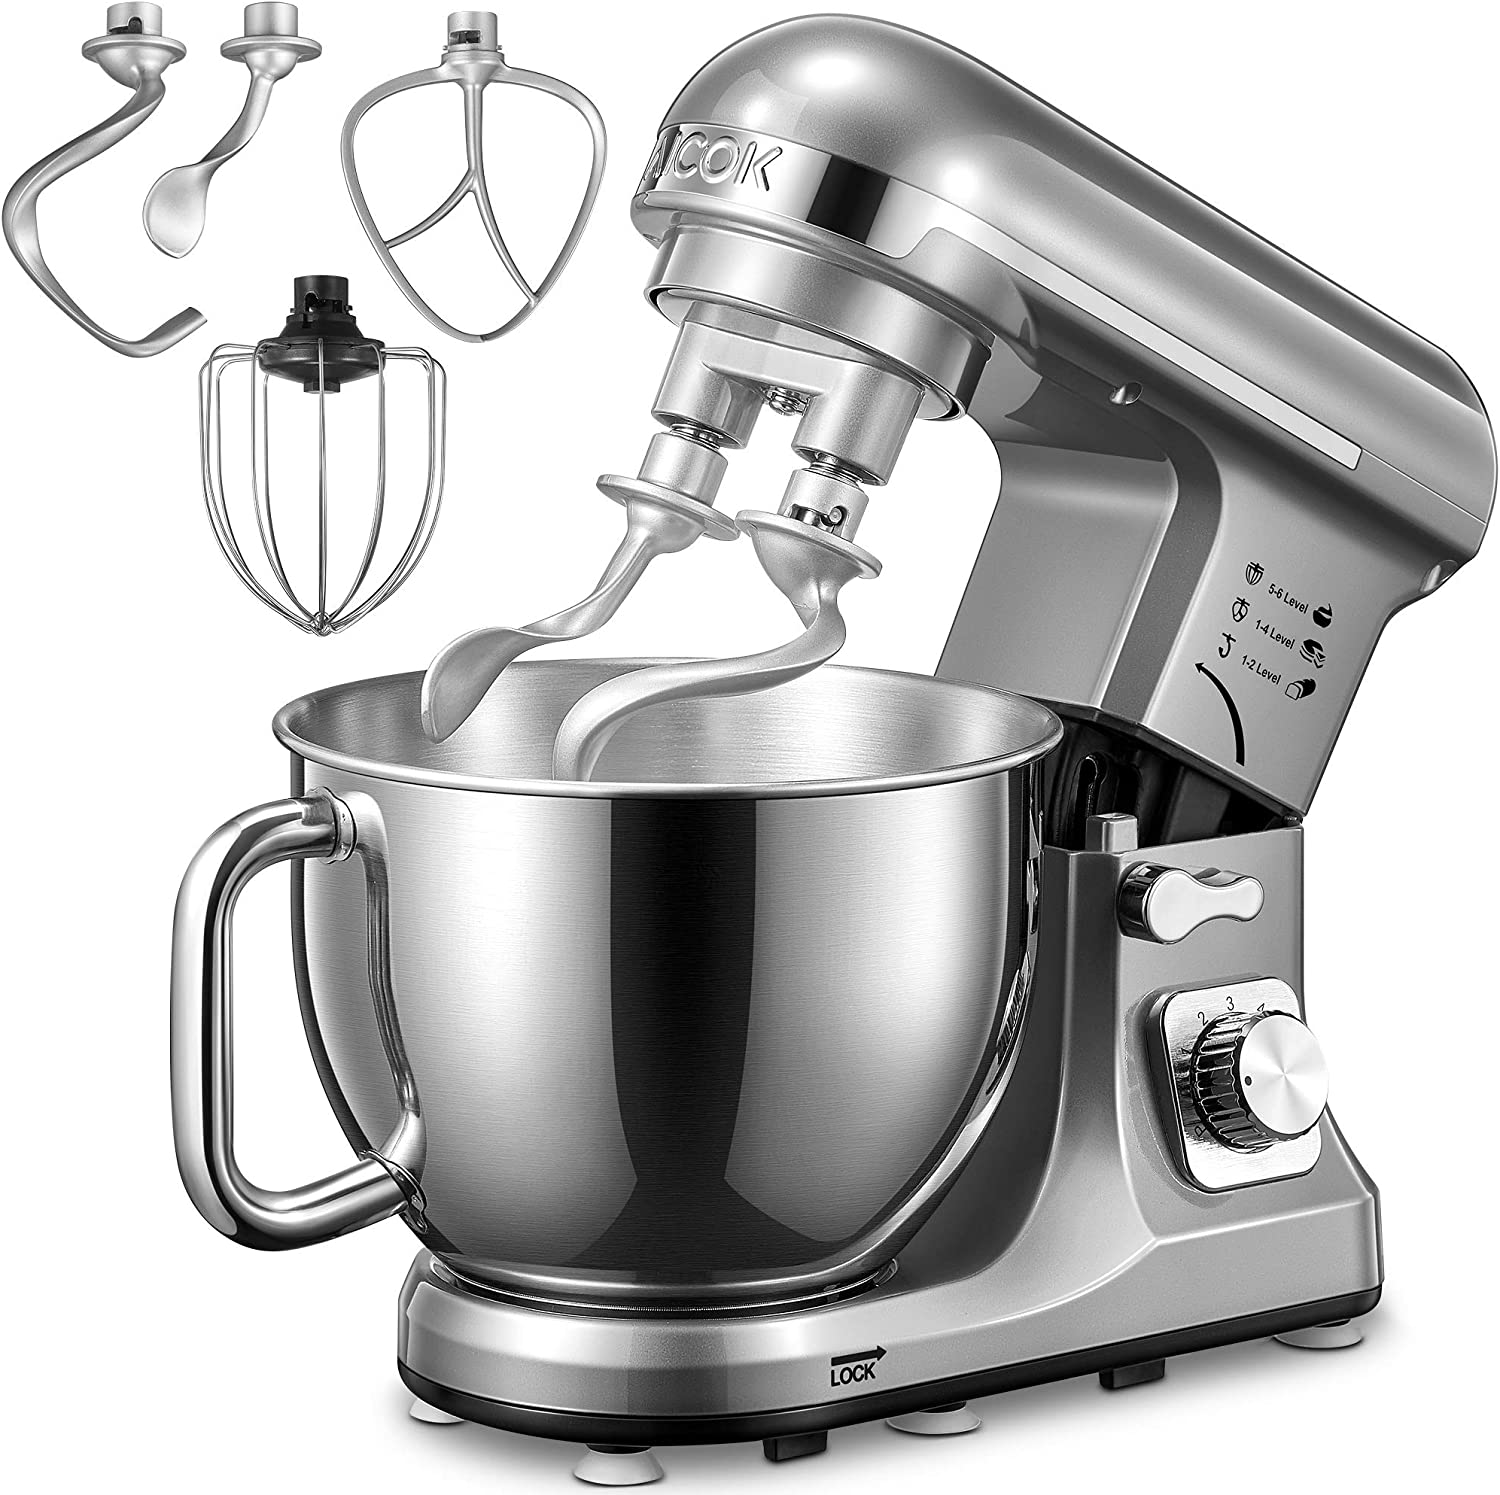 Stand Mixer, Aicok 5.5 Qt Dough Mixer with Double Dough Hooks, Whisk, Beater, Stainless Steel Bowl, 6 Speeds Tilt-Head Food Mixer, Kitchen Electric Mixer with Pouring Shield, Silver